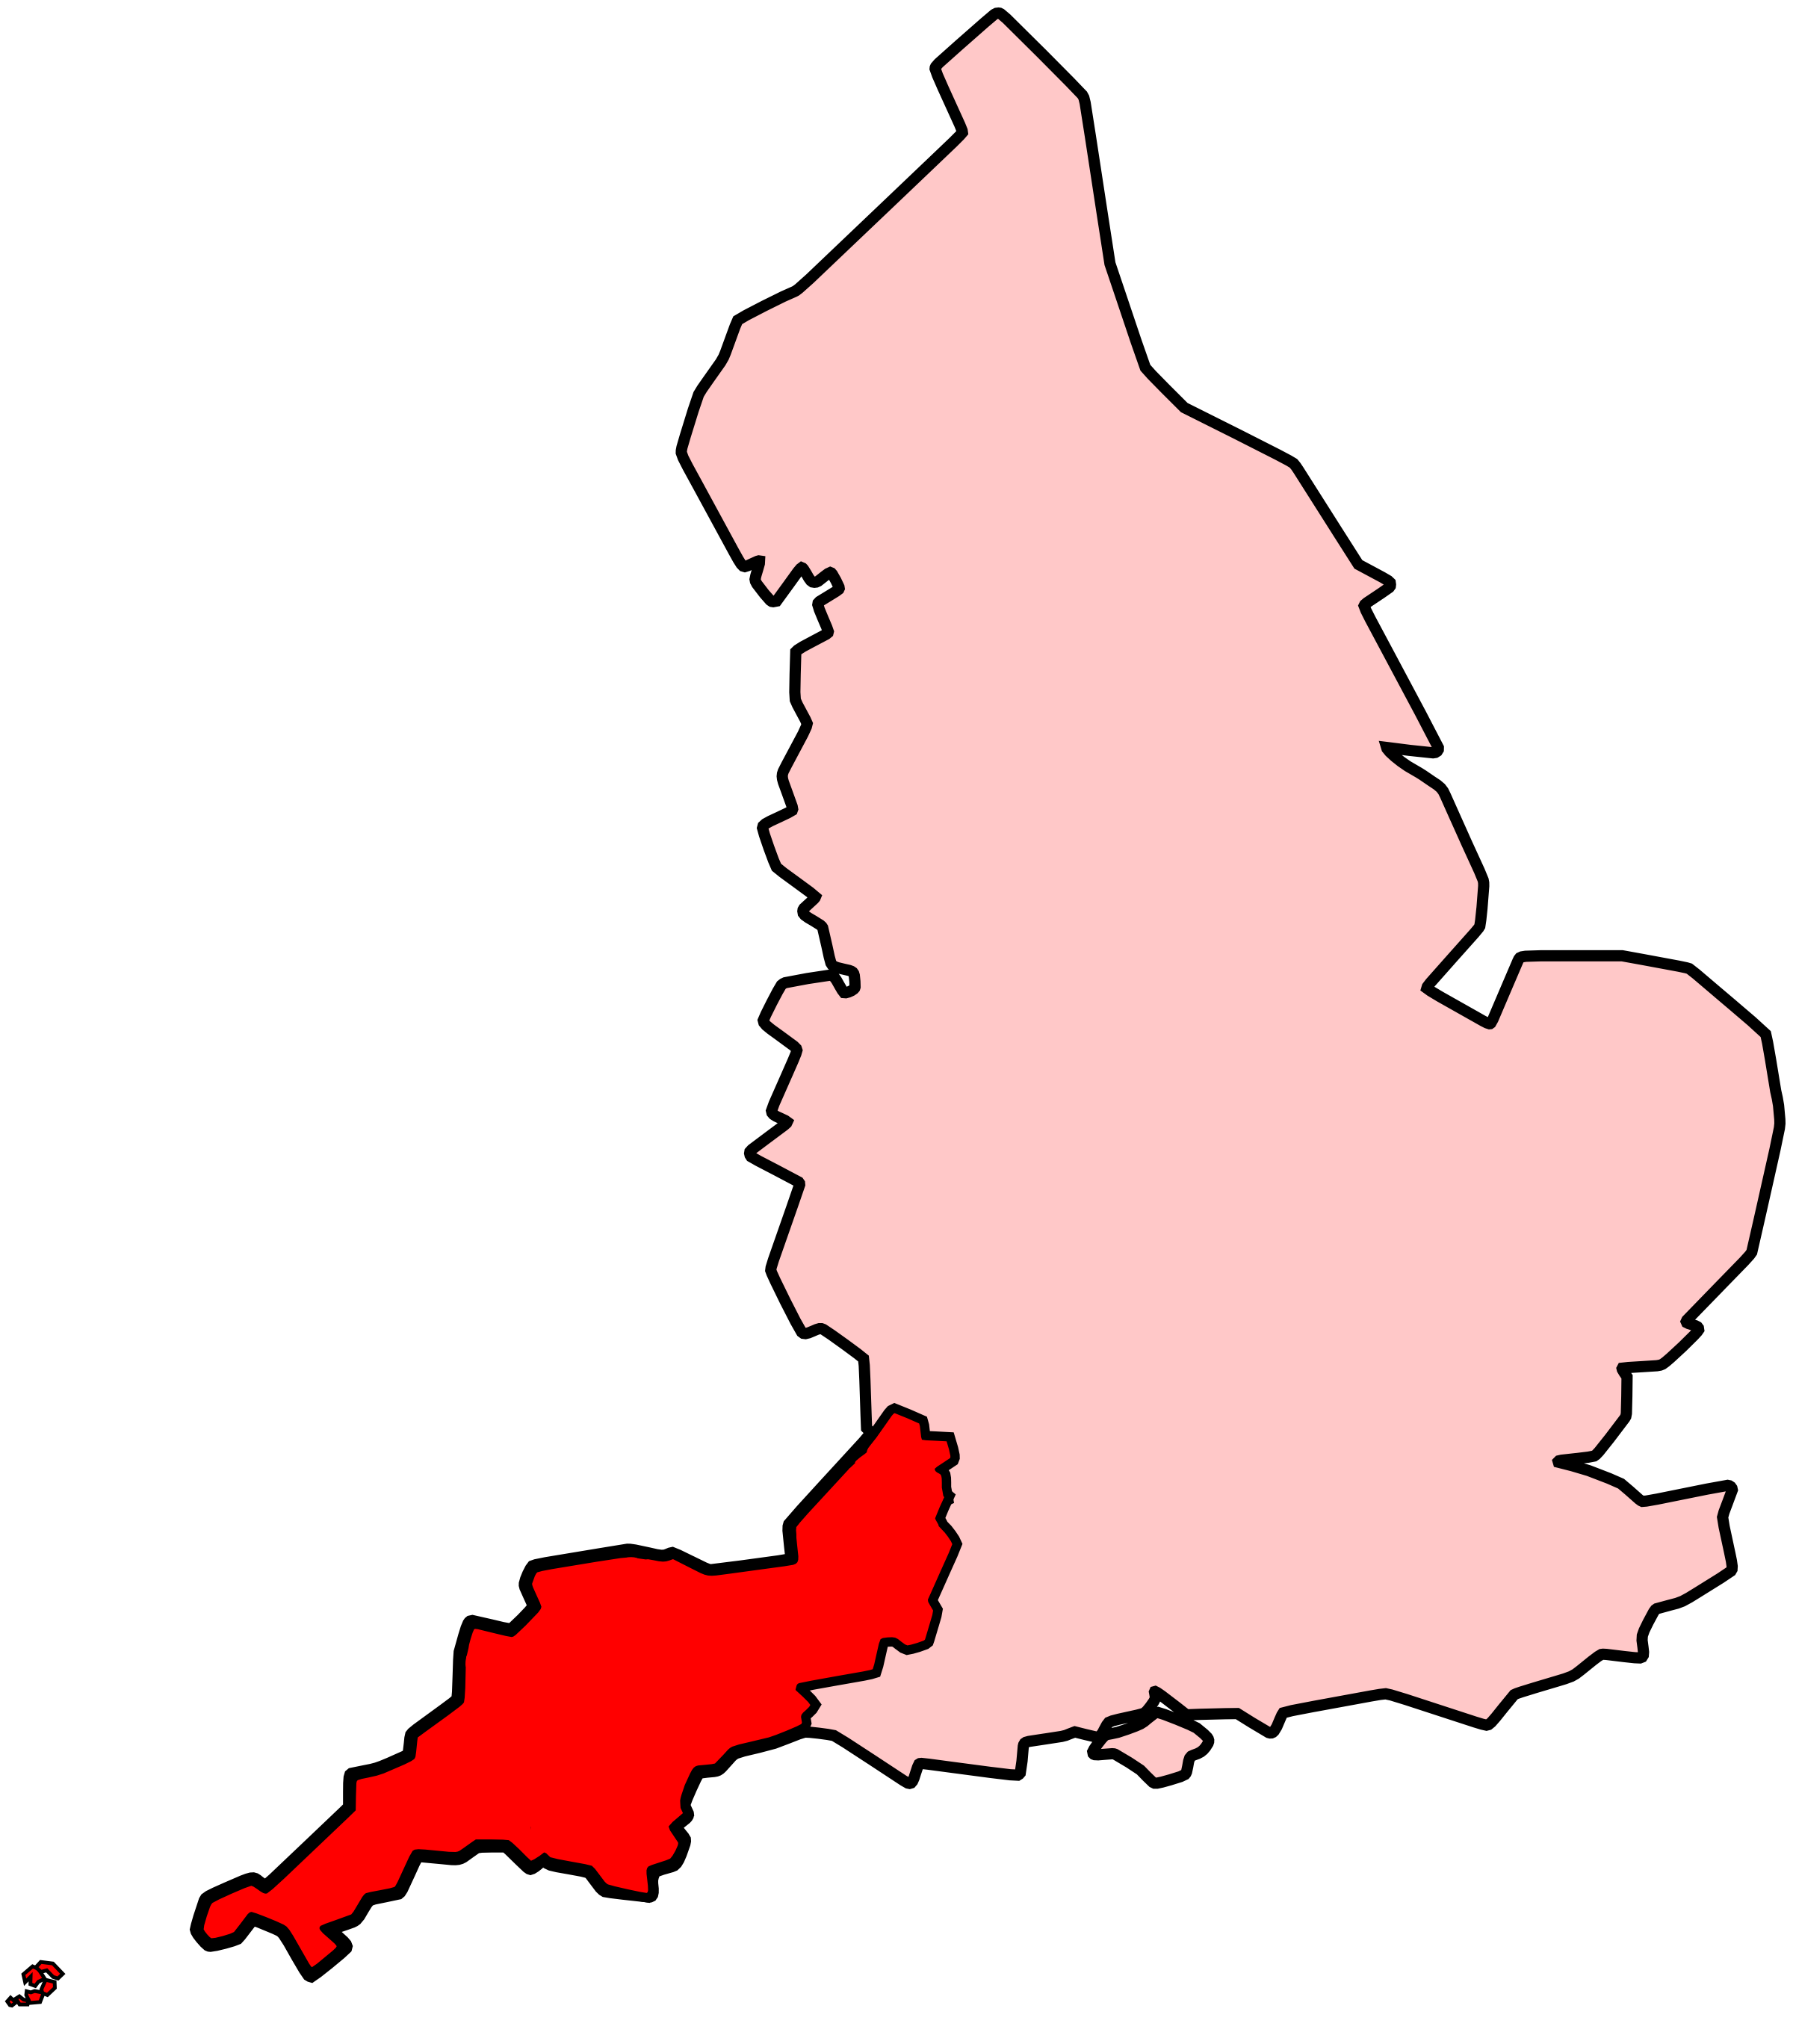 File map of south west england shown within england met office region